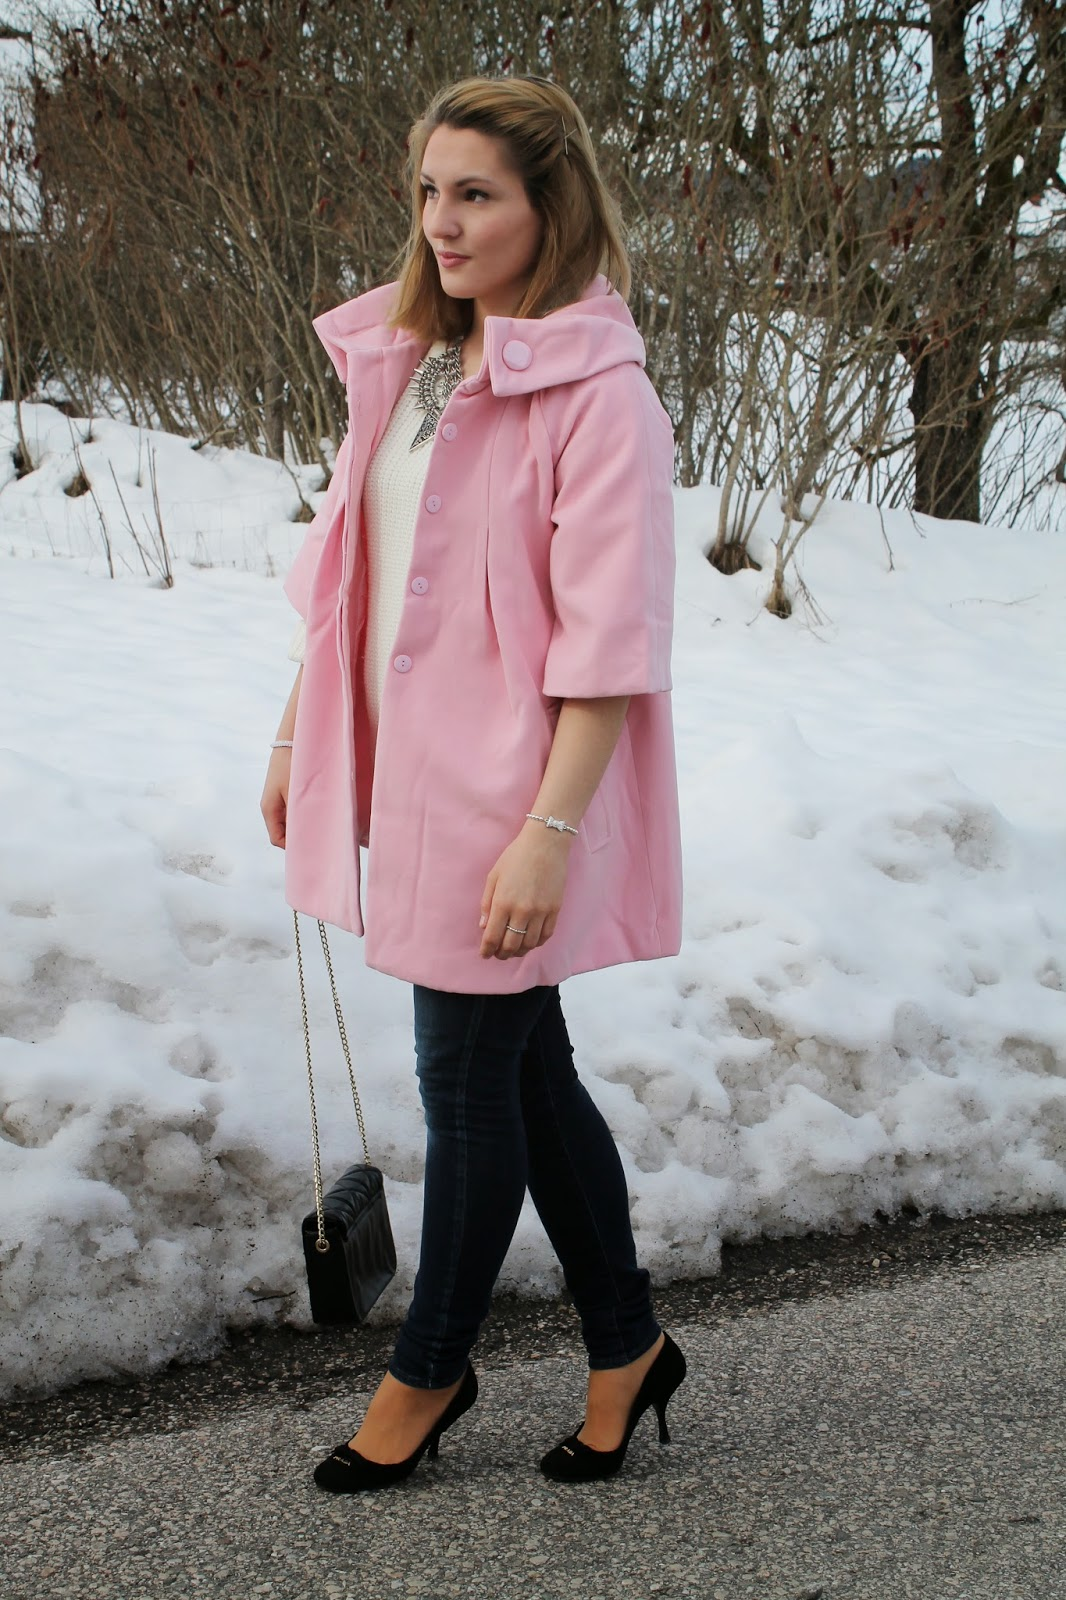 Fashion Blogger Austria Österreich Kärnten Carinthia Lavender Star Svetlana Pink Coat Winter Style Winter look Winter Outfit Spring 2014 Prada Pumps Zara Bag Tally Weijl White Sweater Zara Statement Necklace Statement Kette Siberne Kette Casual Look Edgy Elegant Bussines